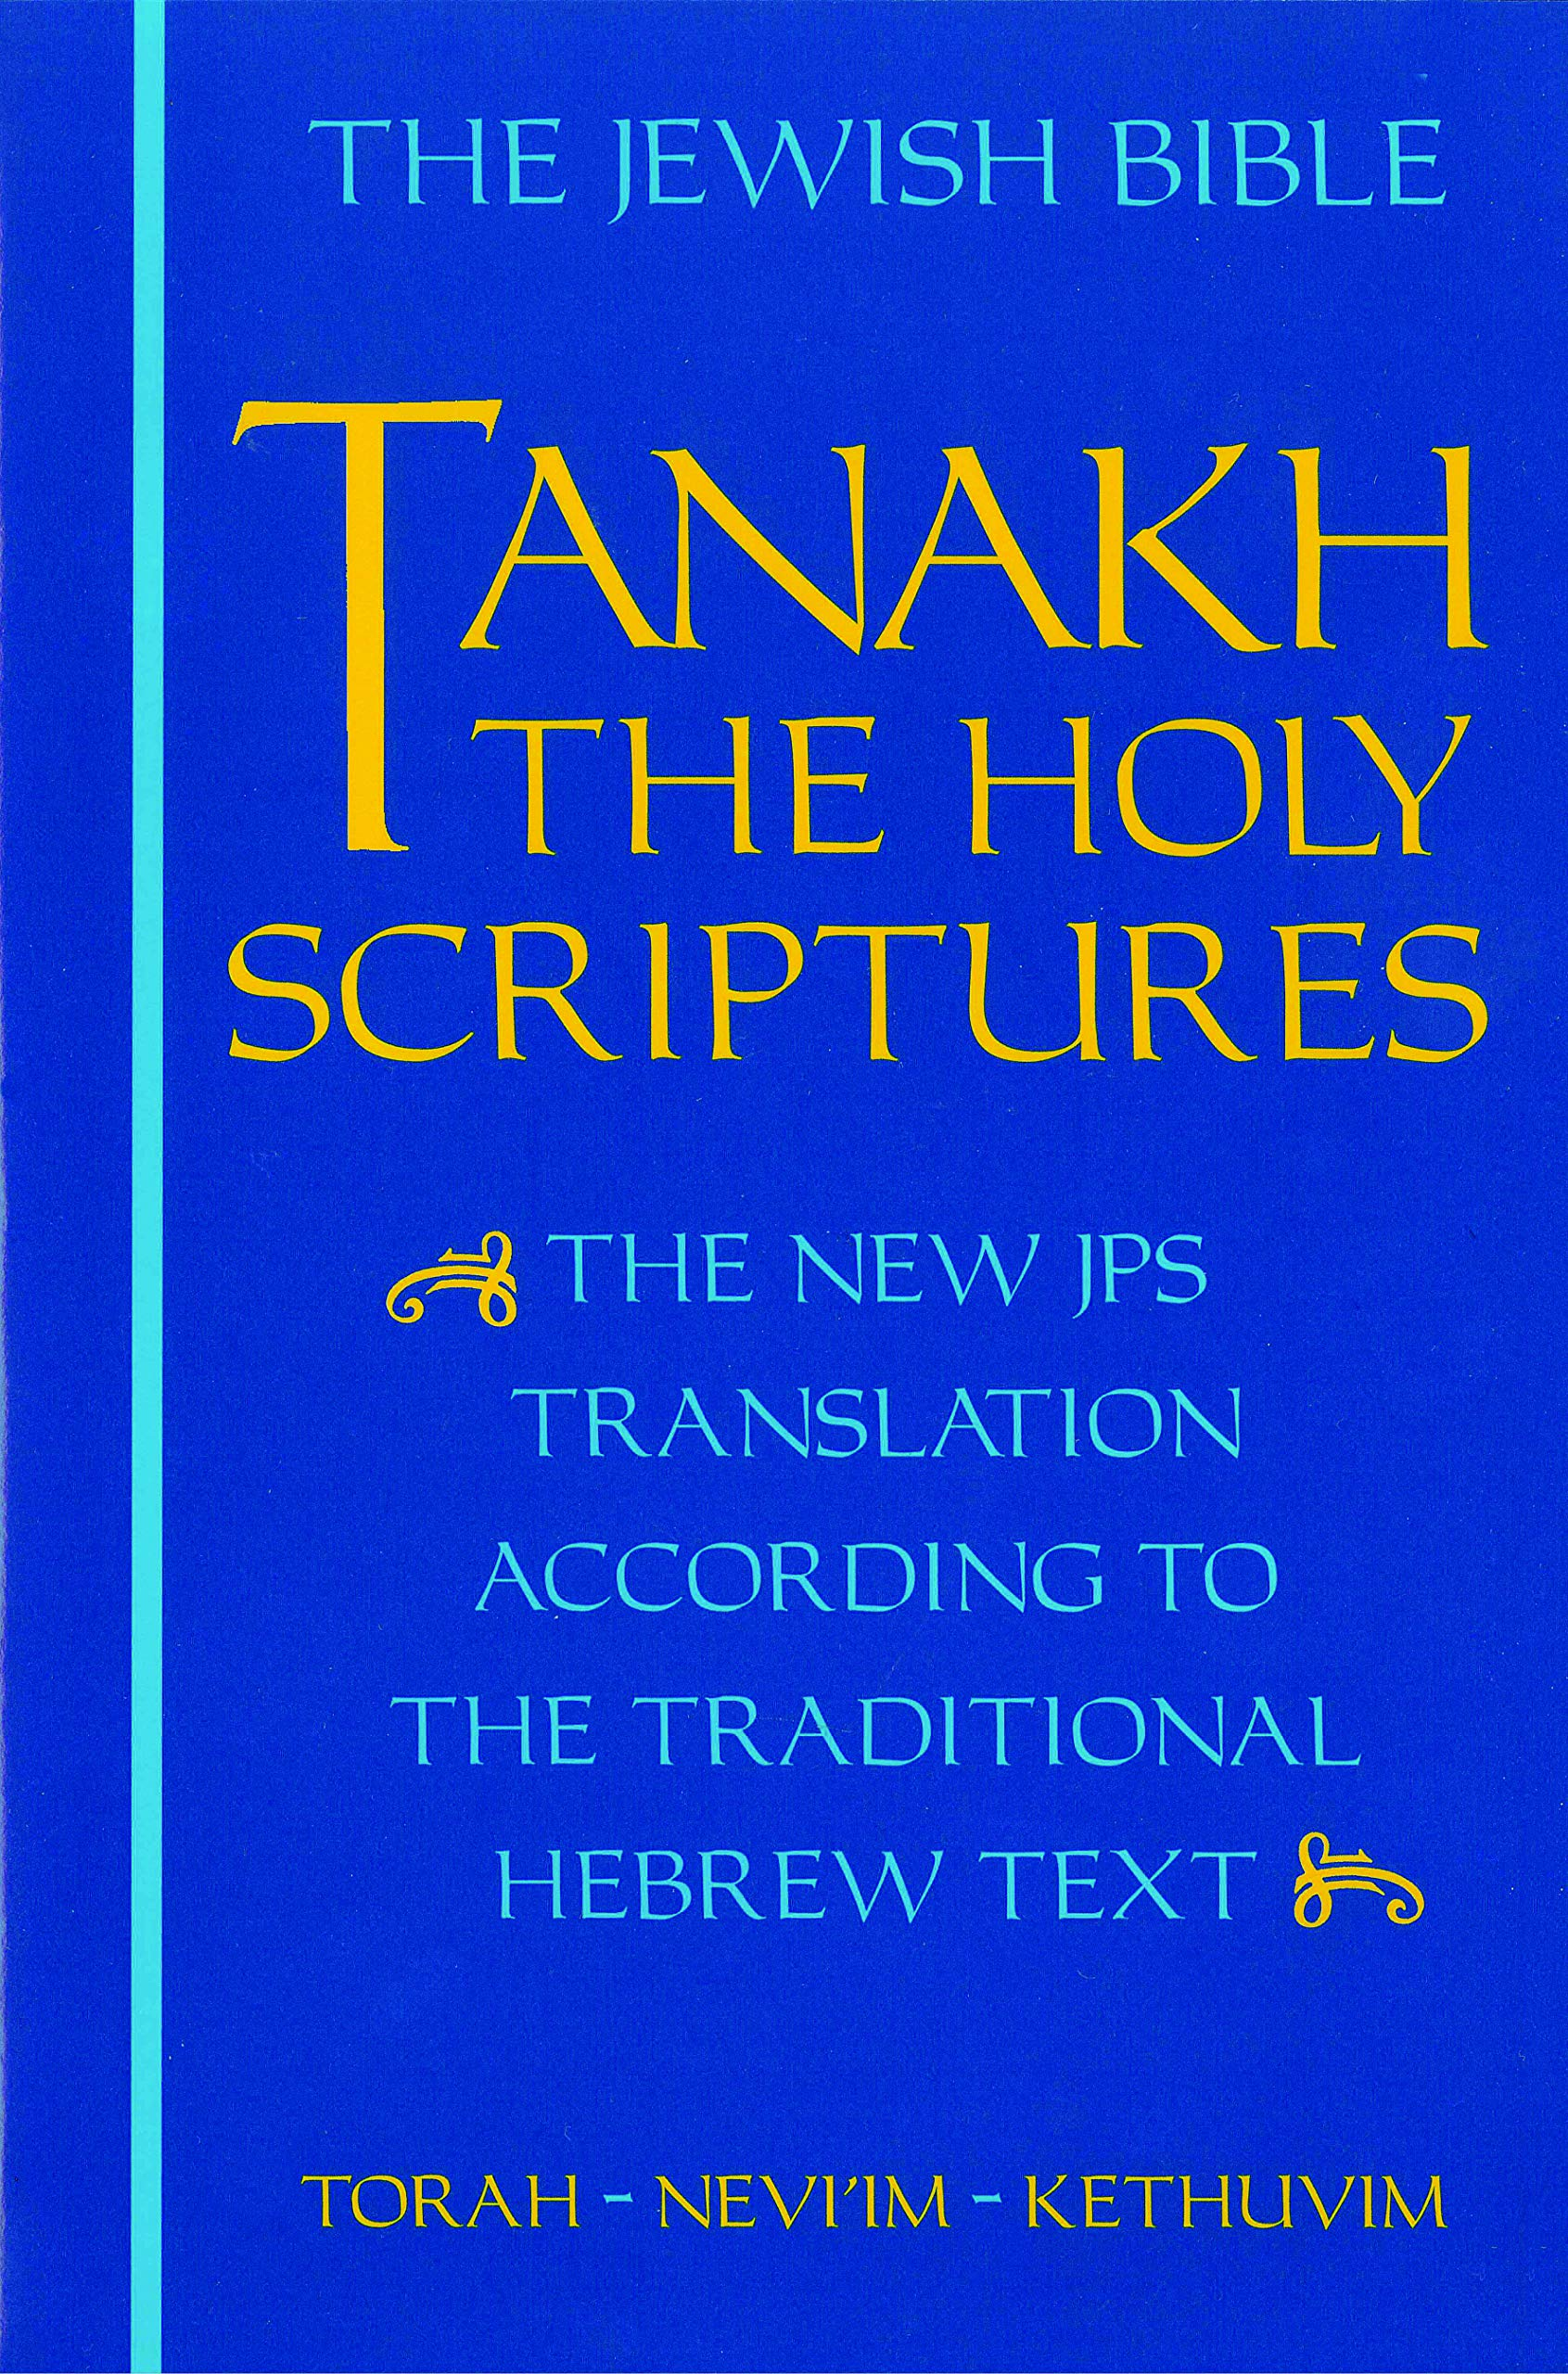 JPS TANAKH: The Holy Scriptures (blue): The New JPS Translation according to the Traditional Hebrew Text by Jewish Publication Society